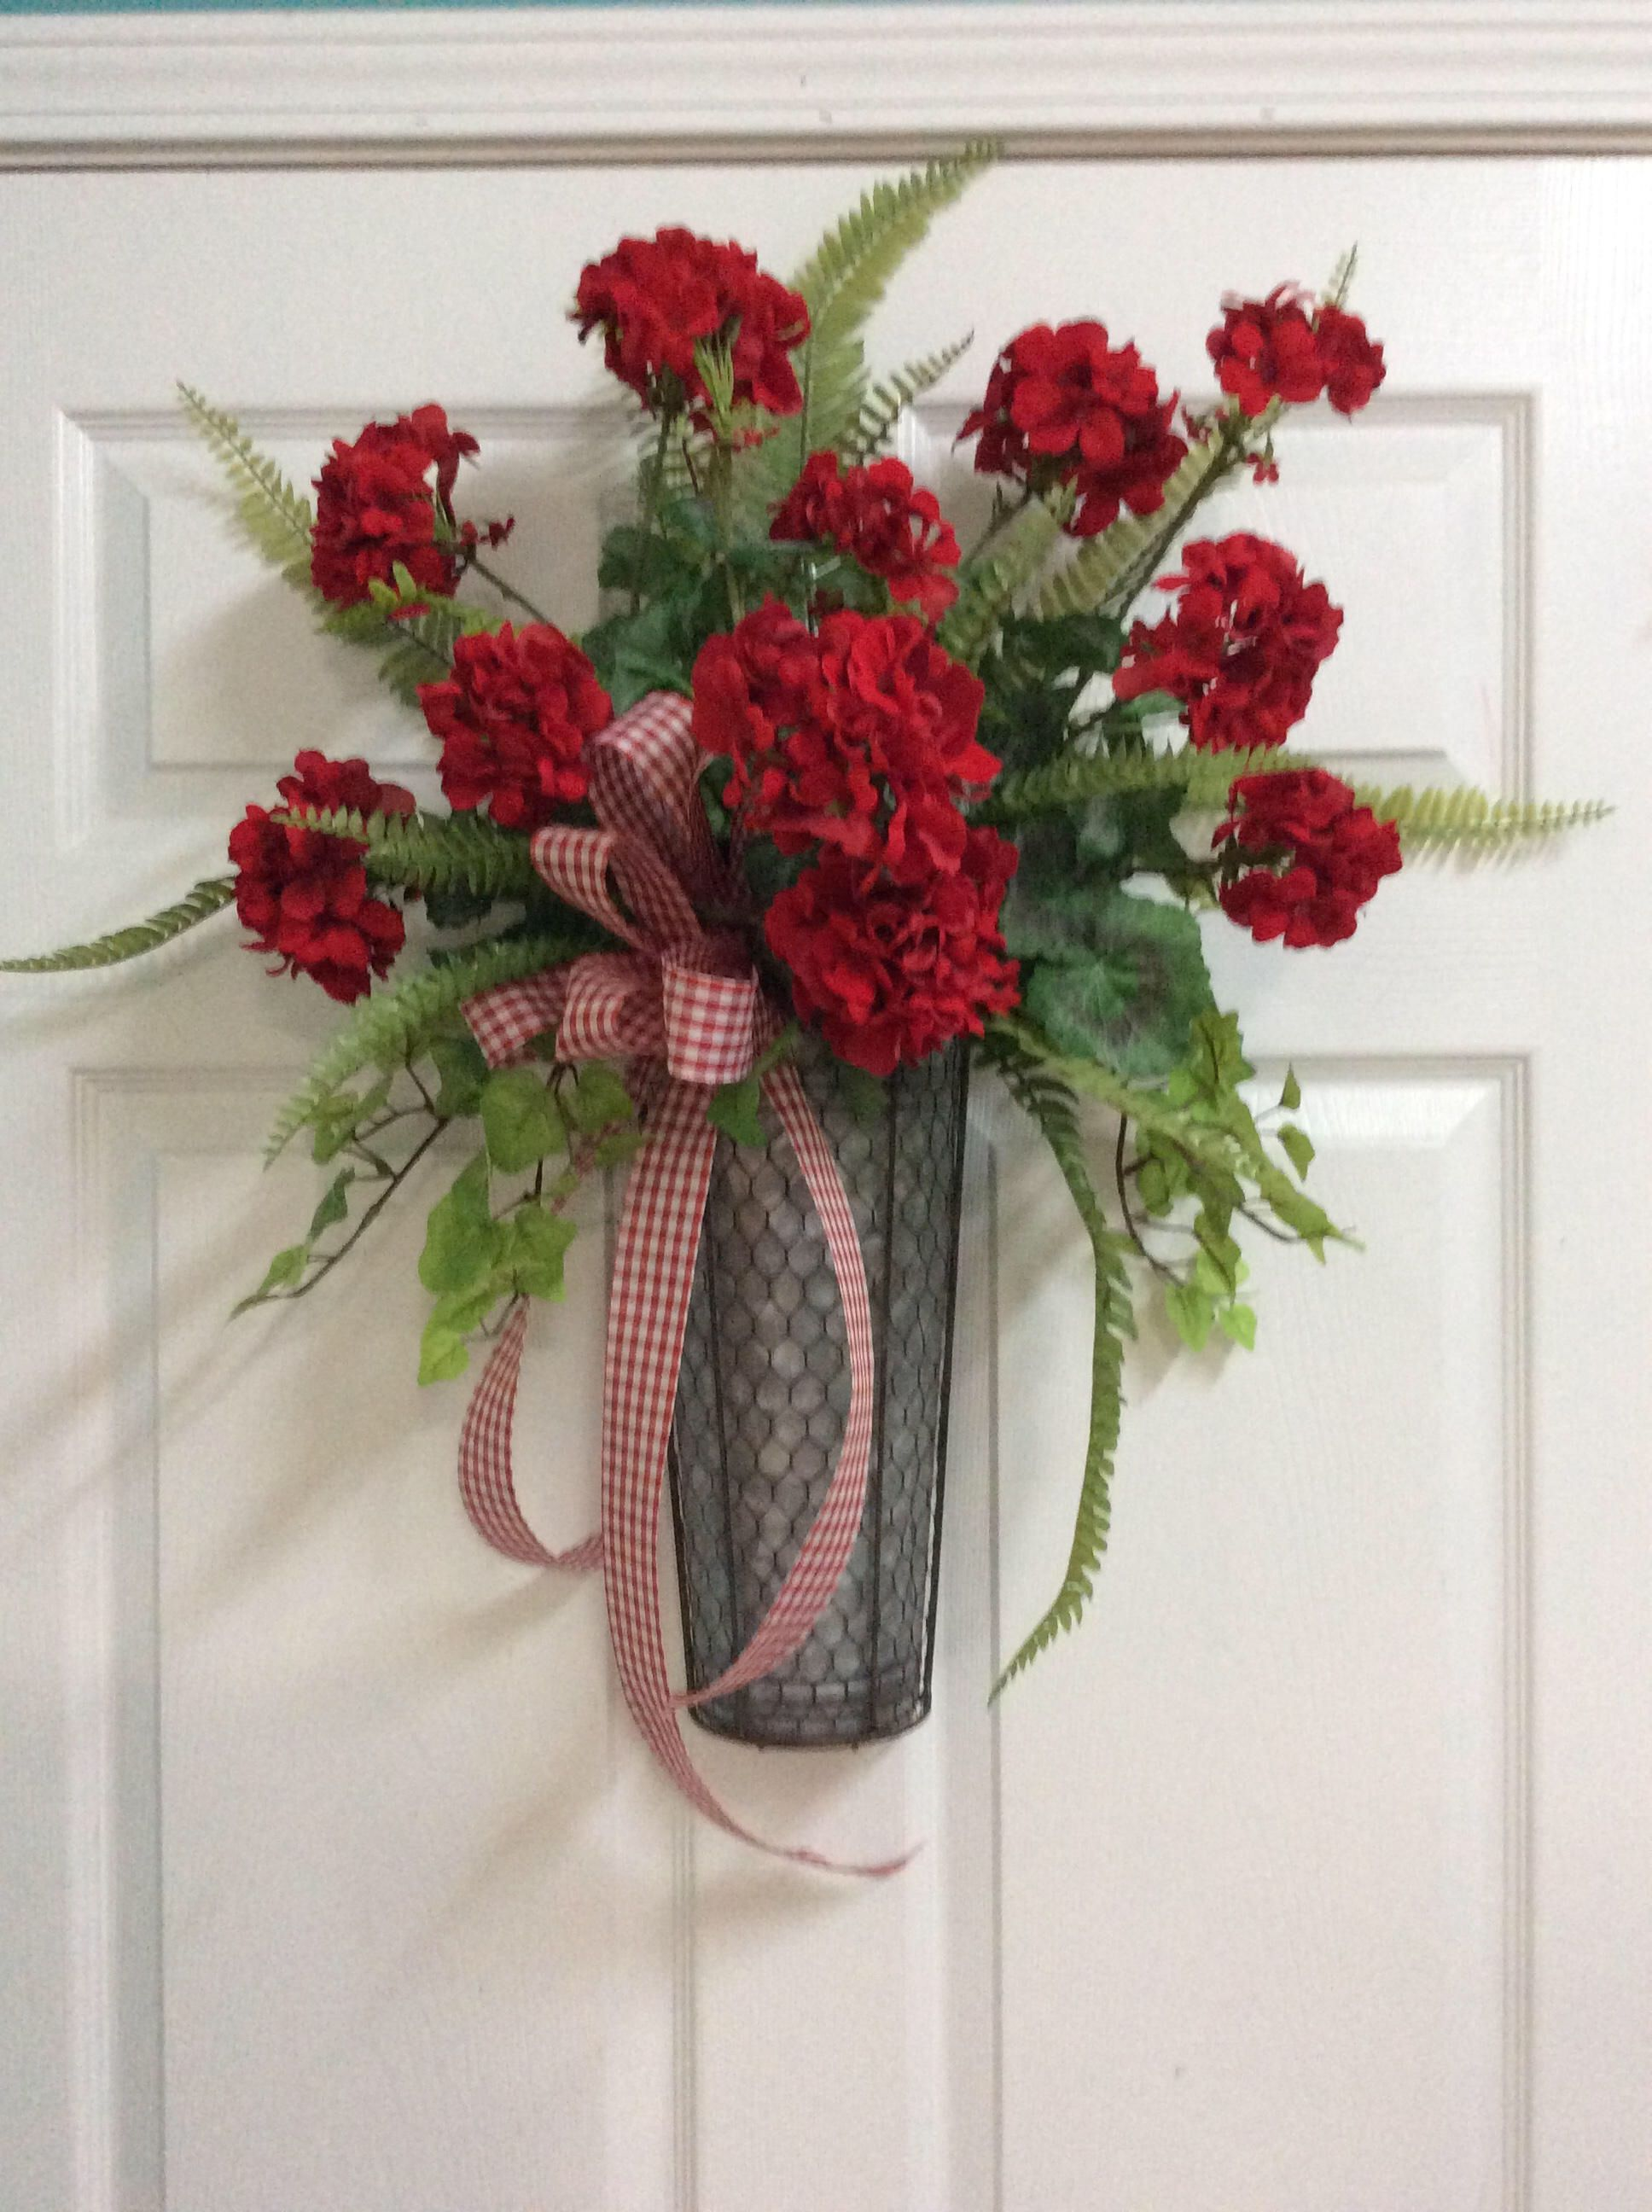 Red Geranium Door Arrangement Red Geraniums Red Door Decoration